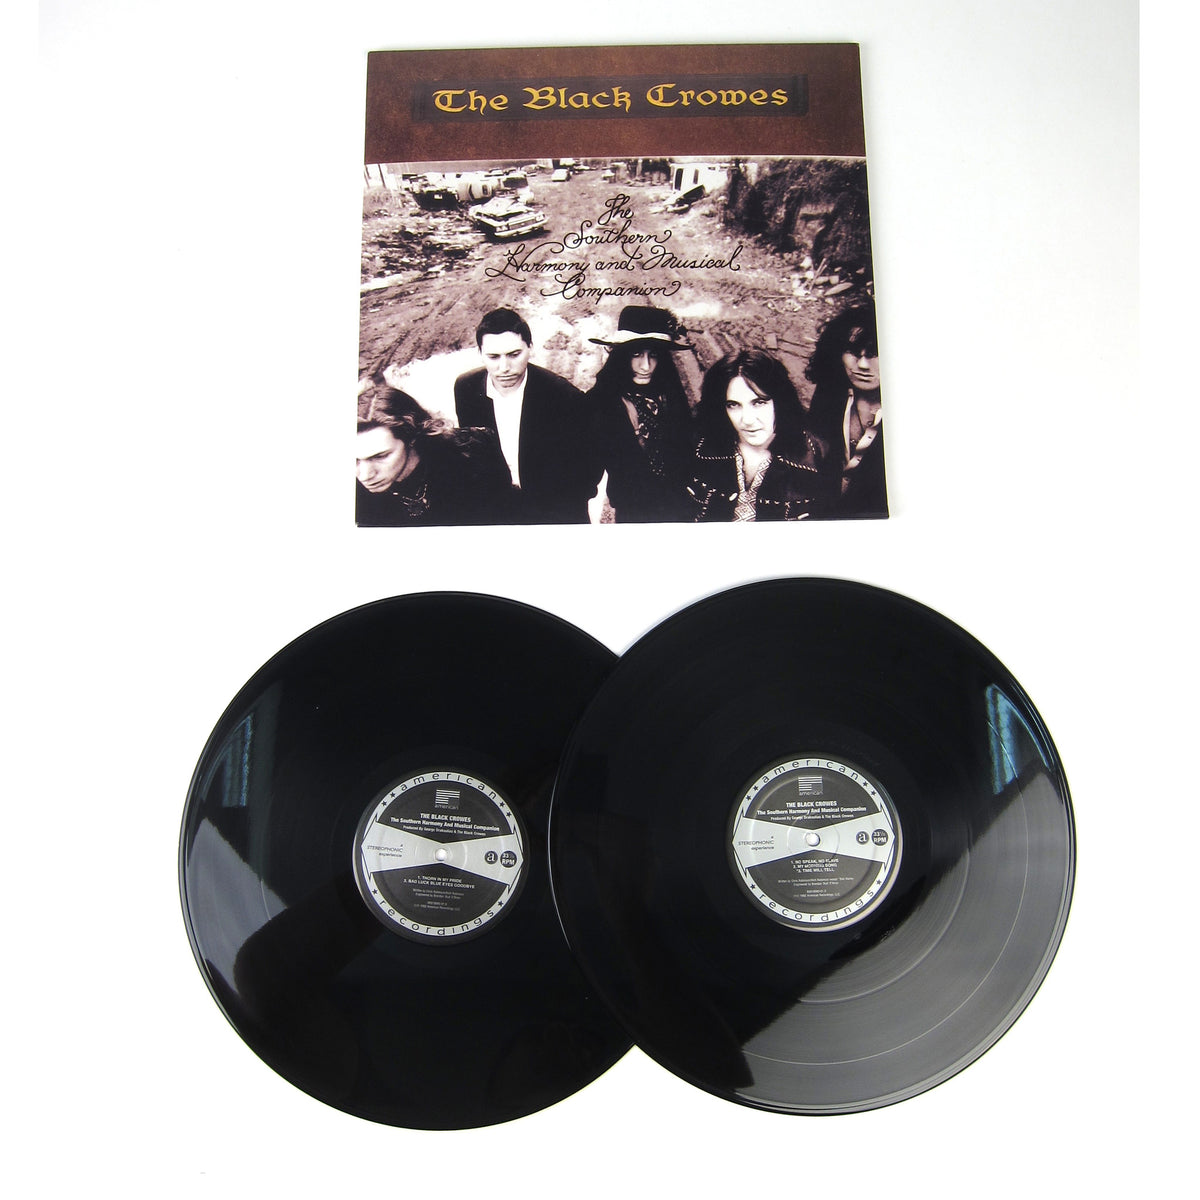 The Black Crowes: The Southern Harmony And Musical Companion (180g) Vinyl 2LP